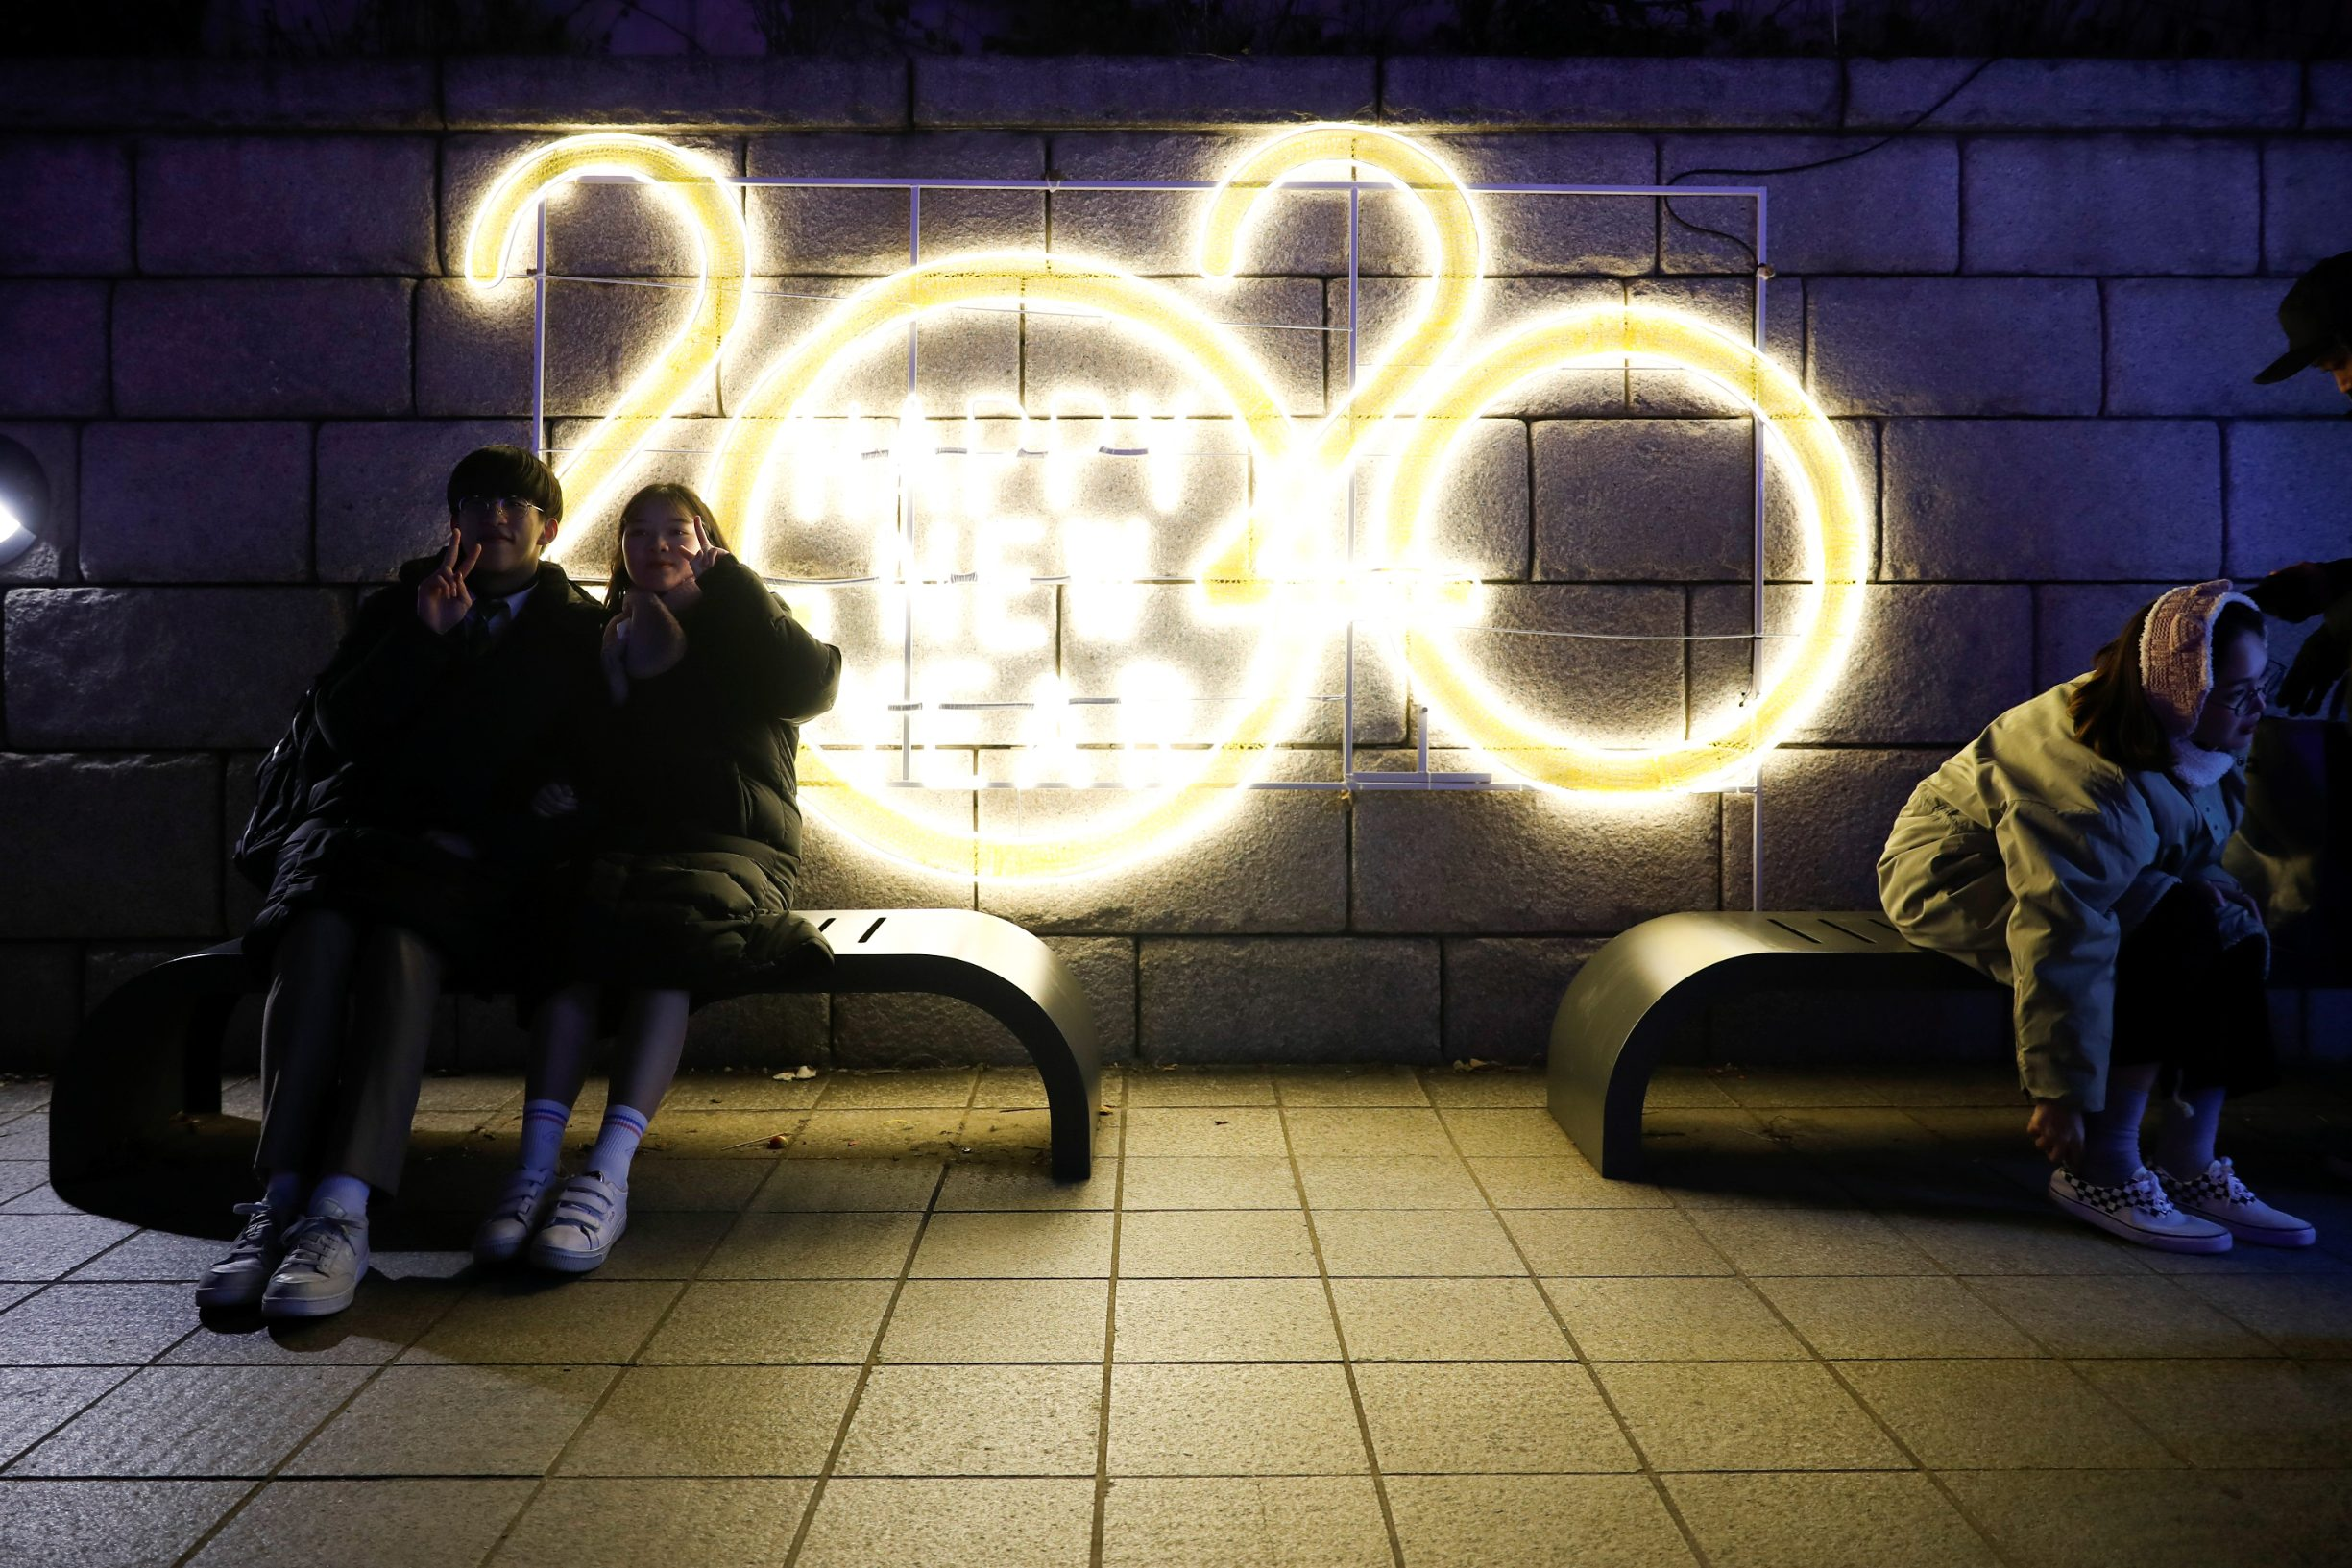 A couple poses for a picture in front of a 2020 luminous sign during New YearÄôs Eve in Seoul, South Korea December 31, 2019. REUTERS/Kim Hong-Ji